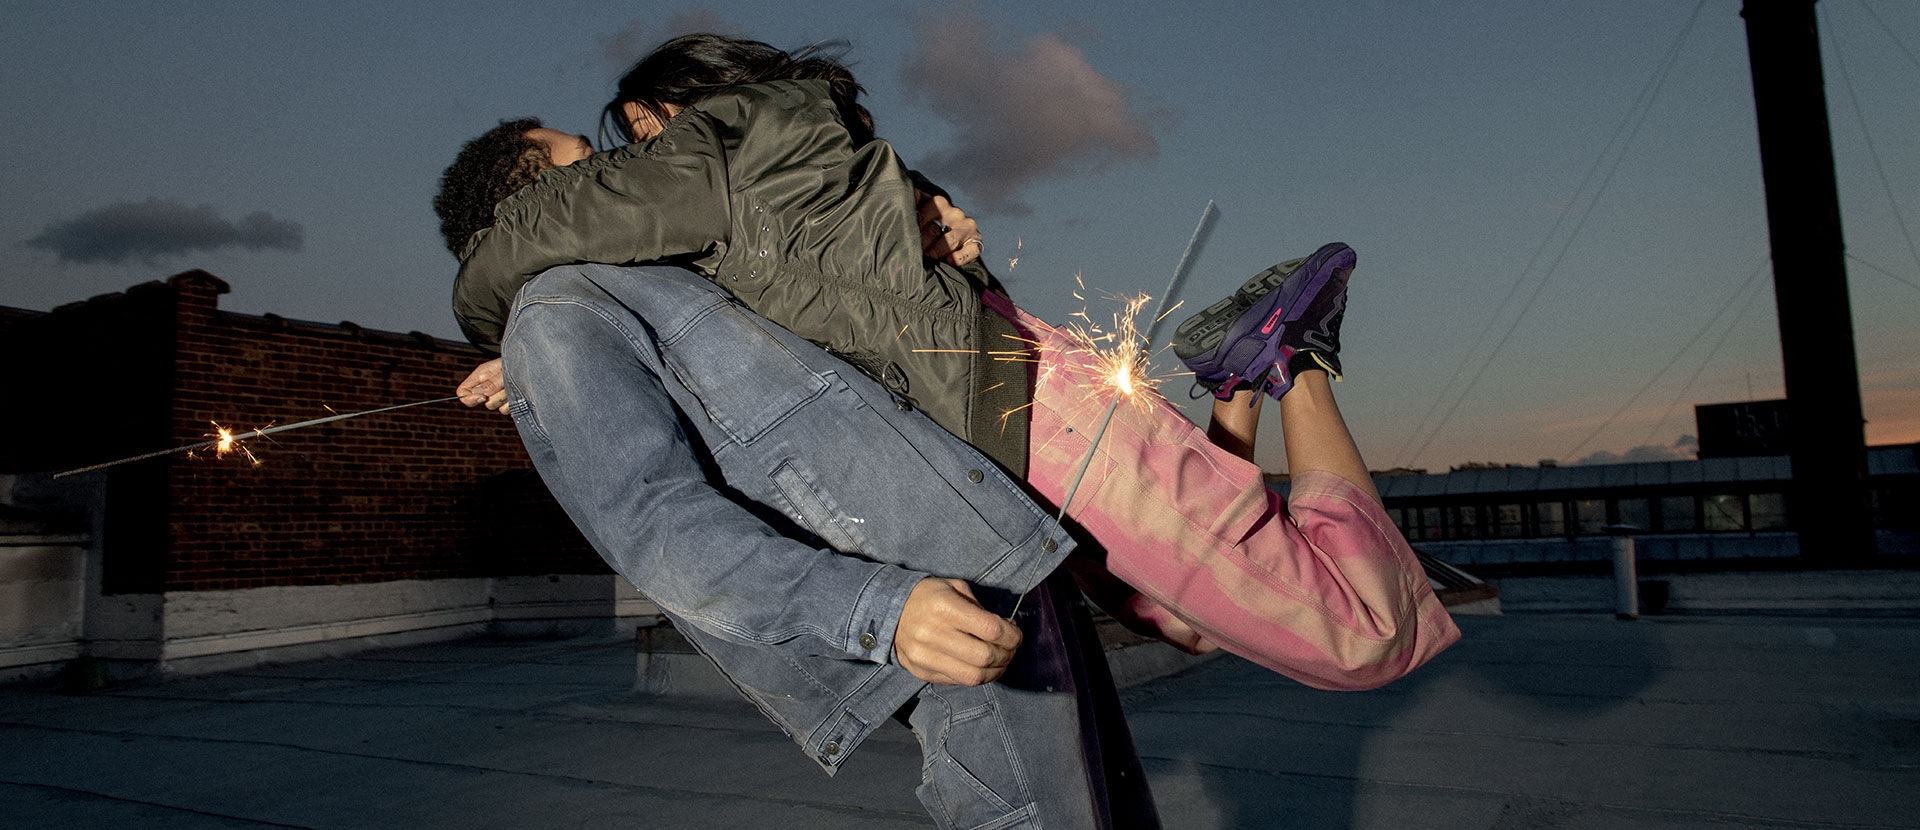 Diesel Promotion - Man Jewels